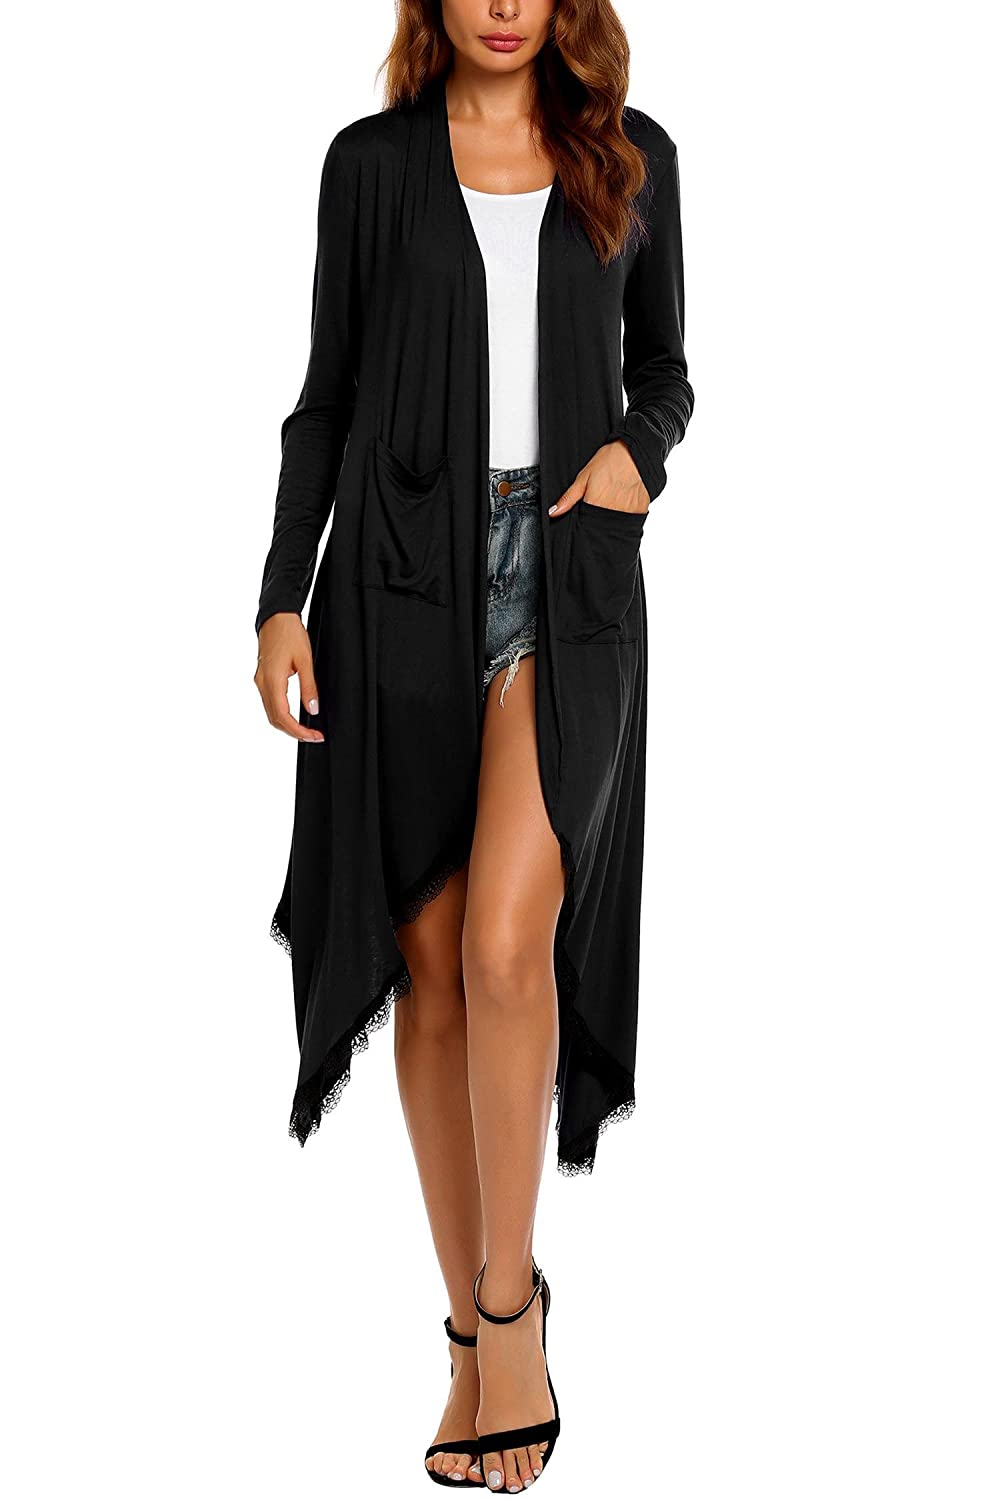 Amazon.com  Women s Long Sleeve Waterfall Patchwork Open Long Maxi Cardigan  with Pockets  Clothing ec3f9045f